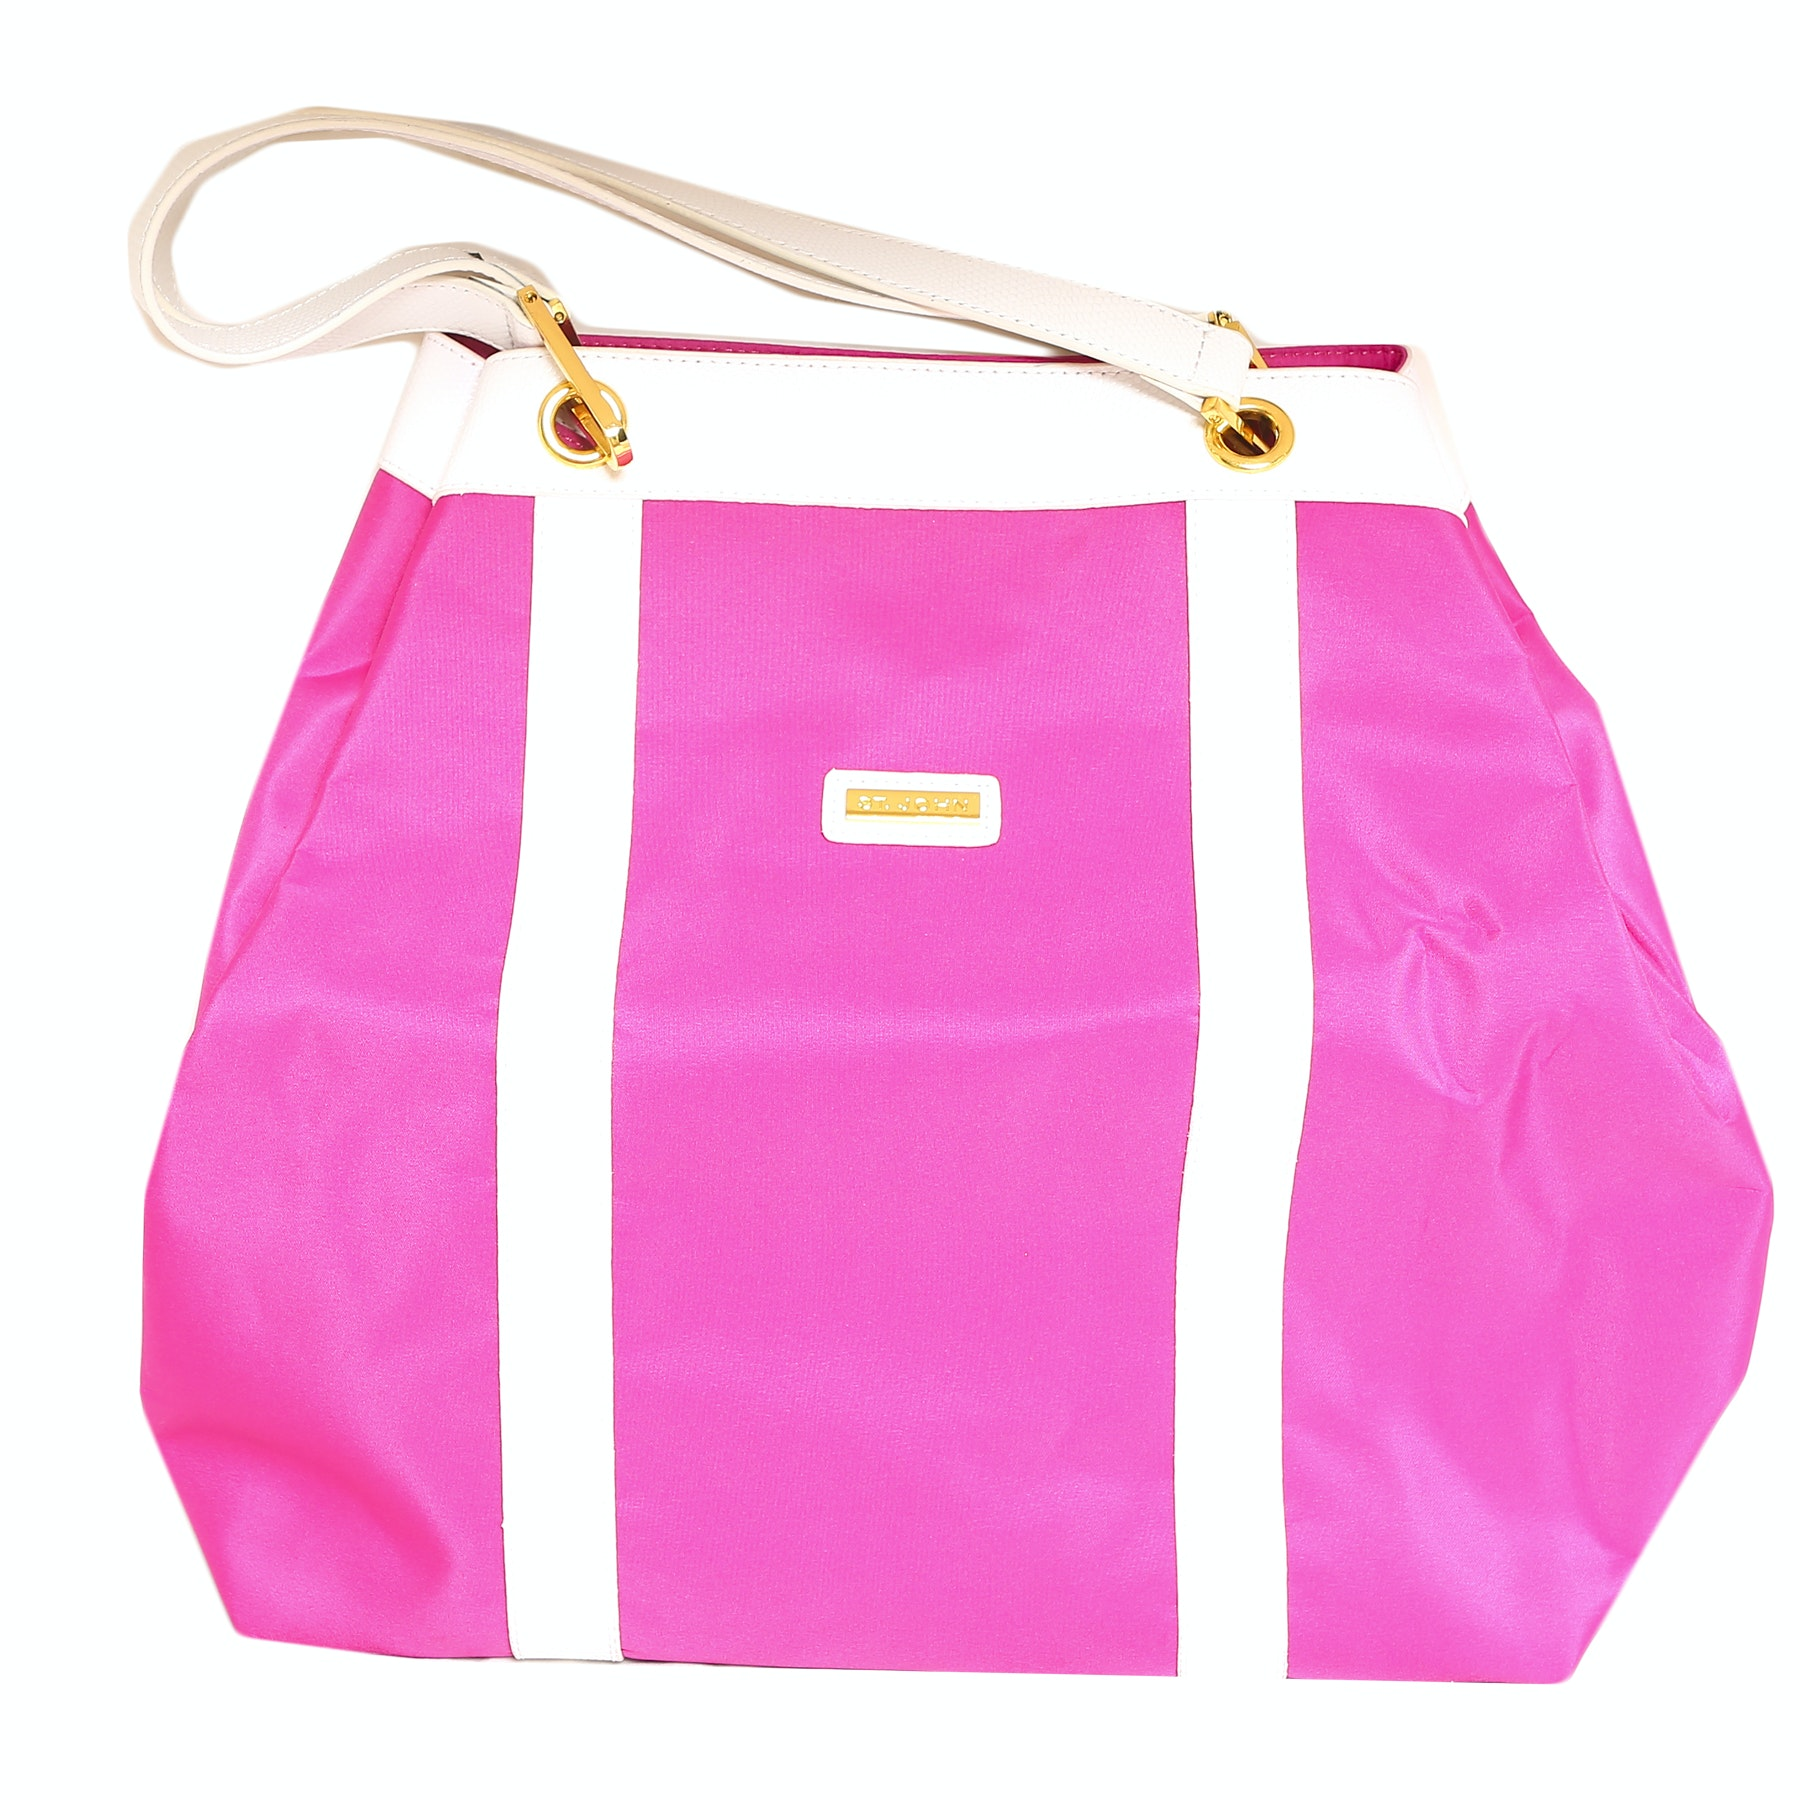 St John Company Store Hot Pink and White Tote